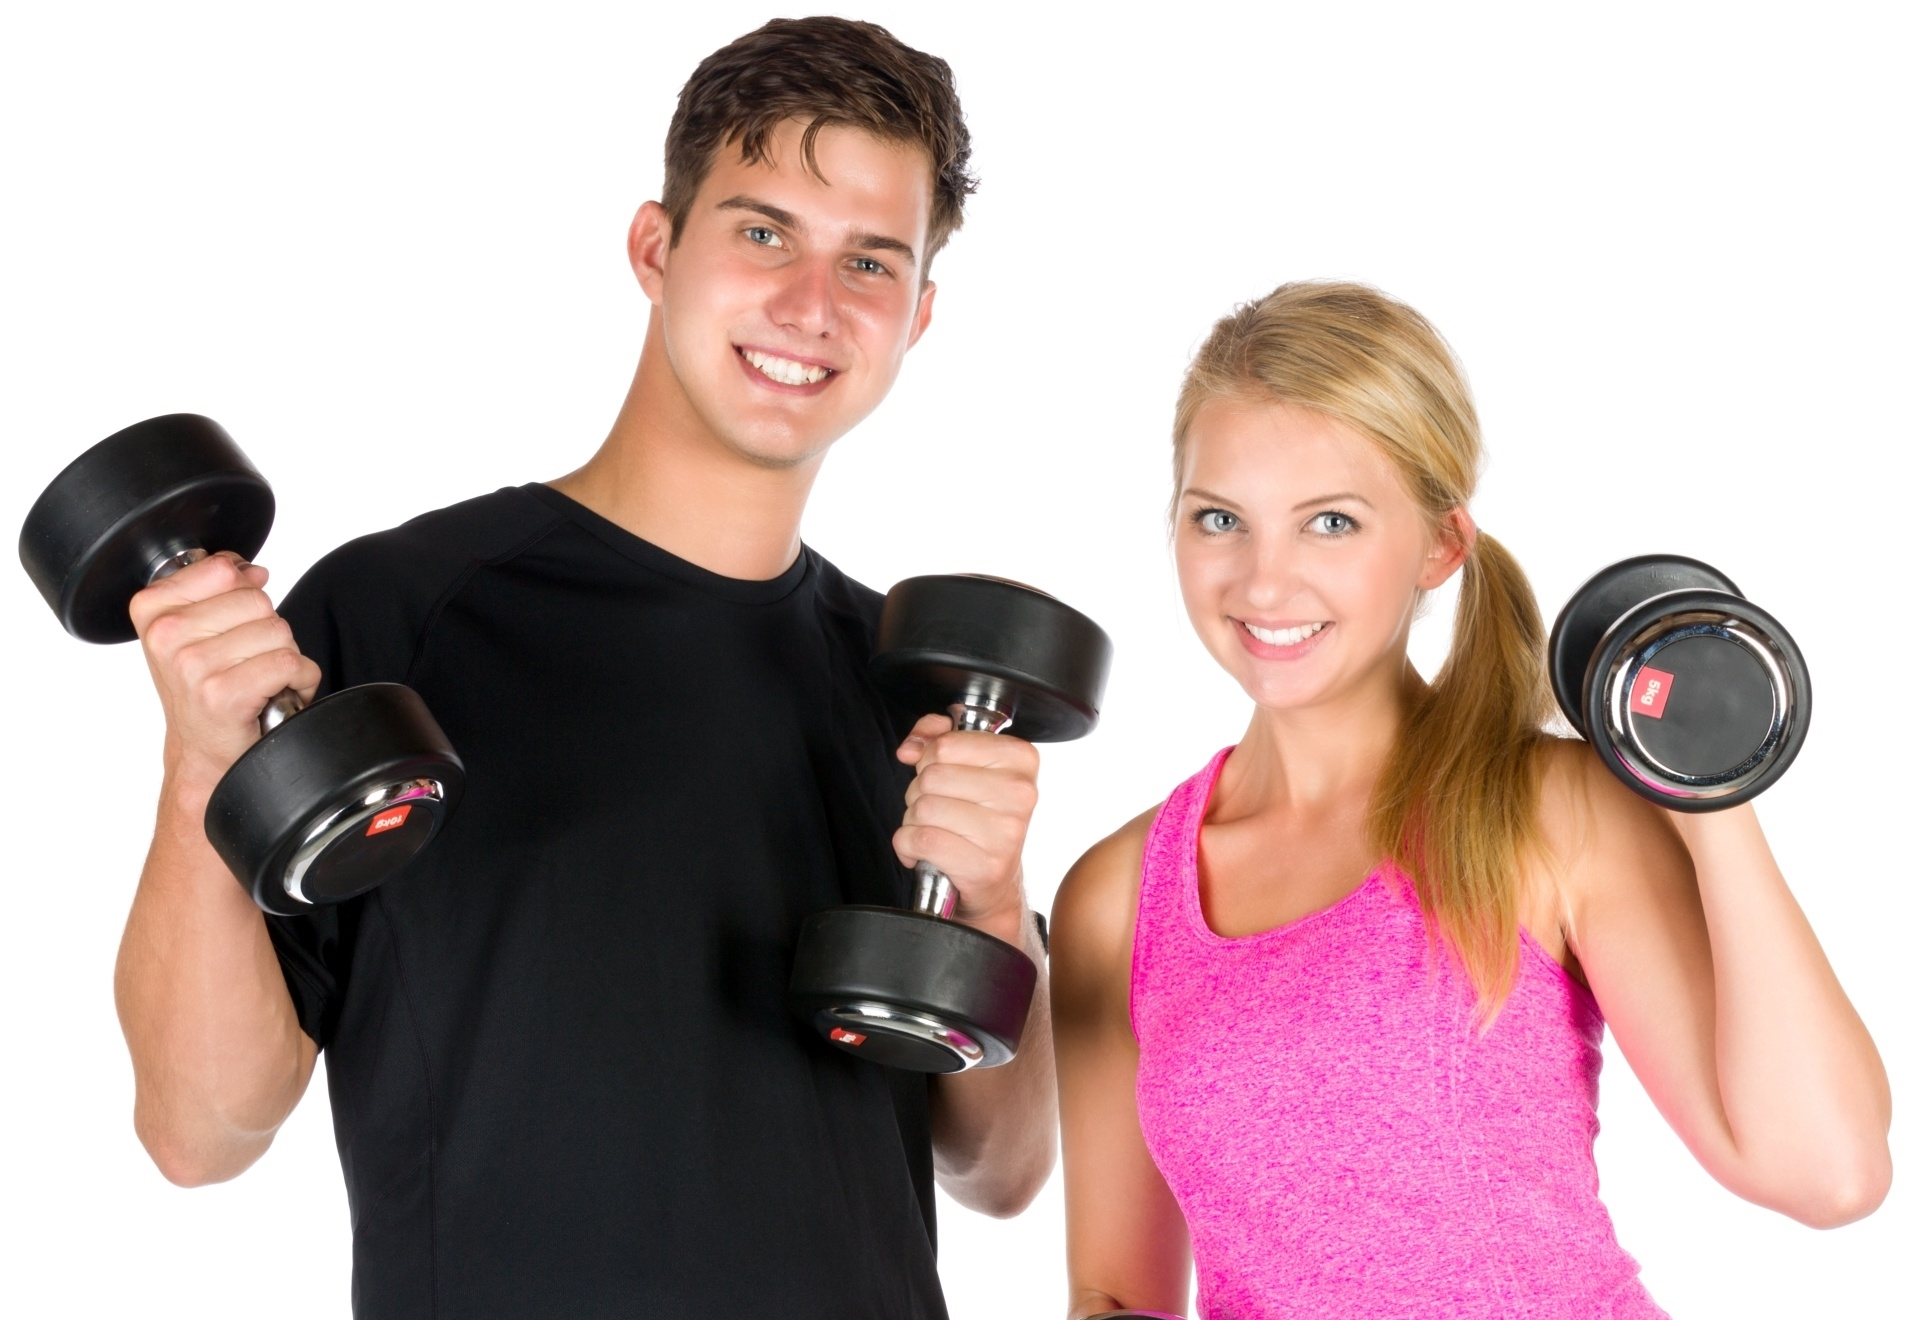 young-couple-workout-1487352885qp4-crop_201806031154085a1.jpg